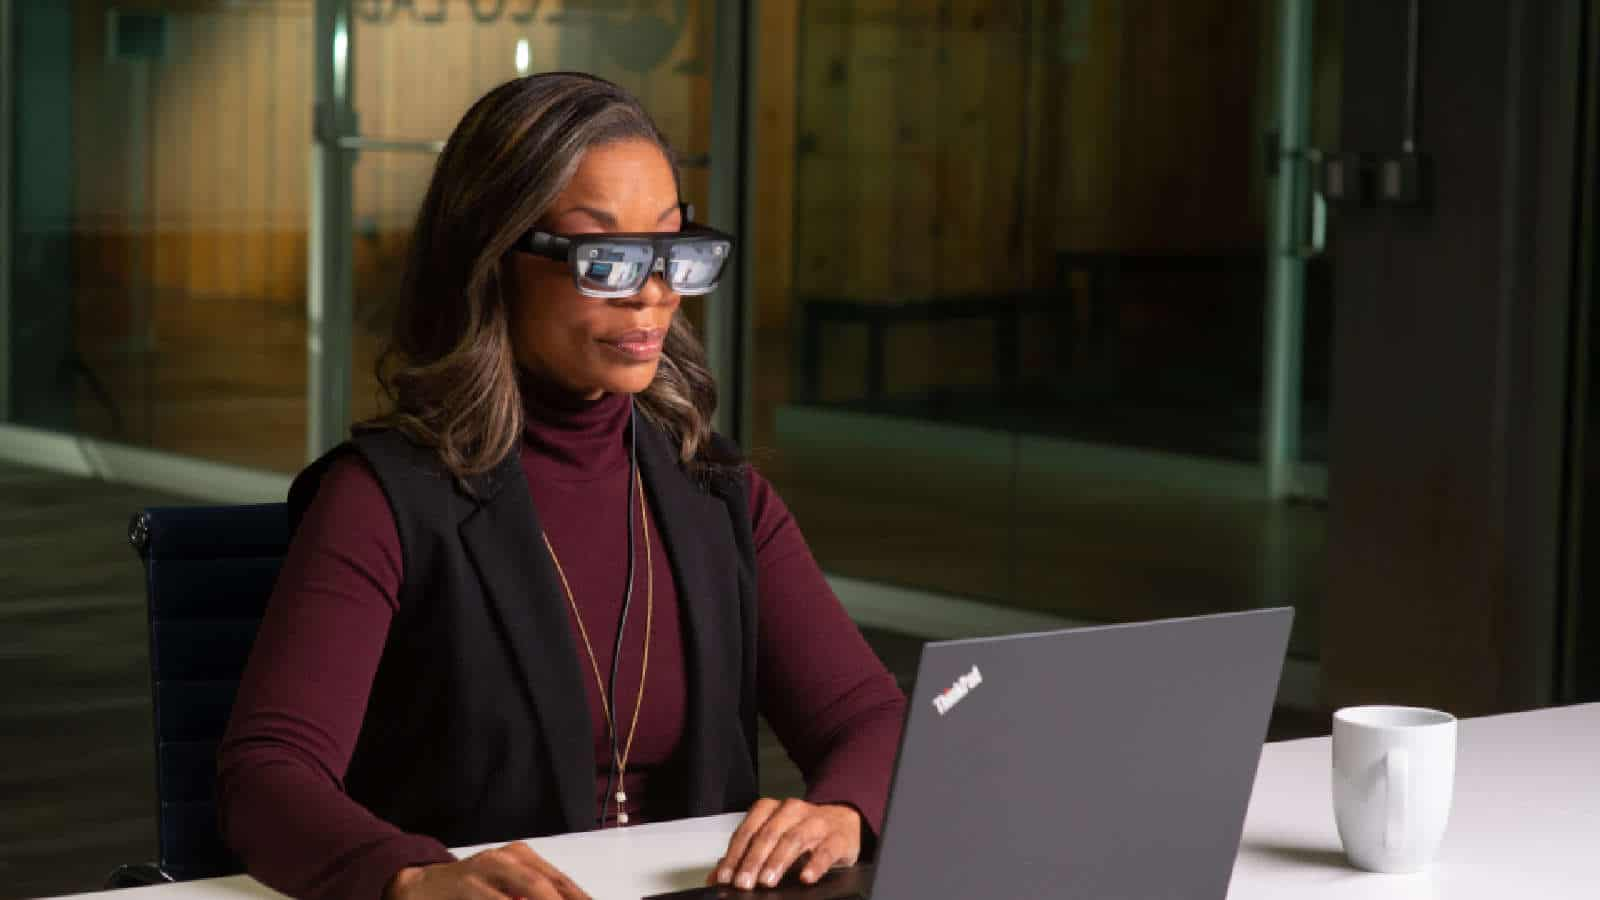 lenovo thinkreality a3 smart glasses being used by black woman with a laptop